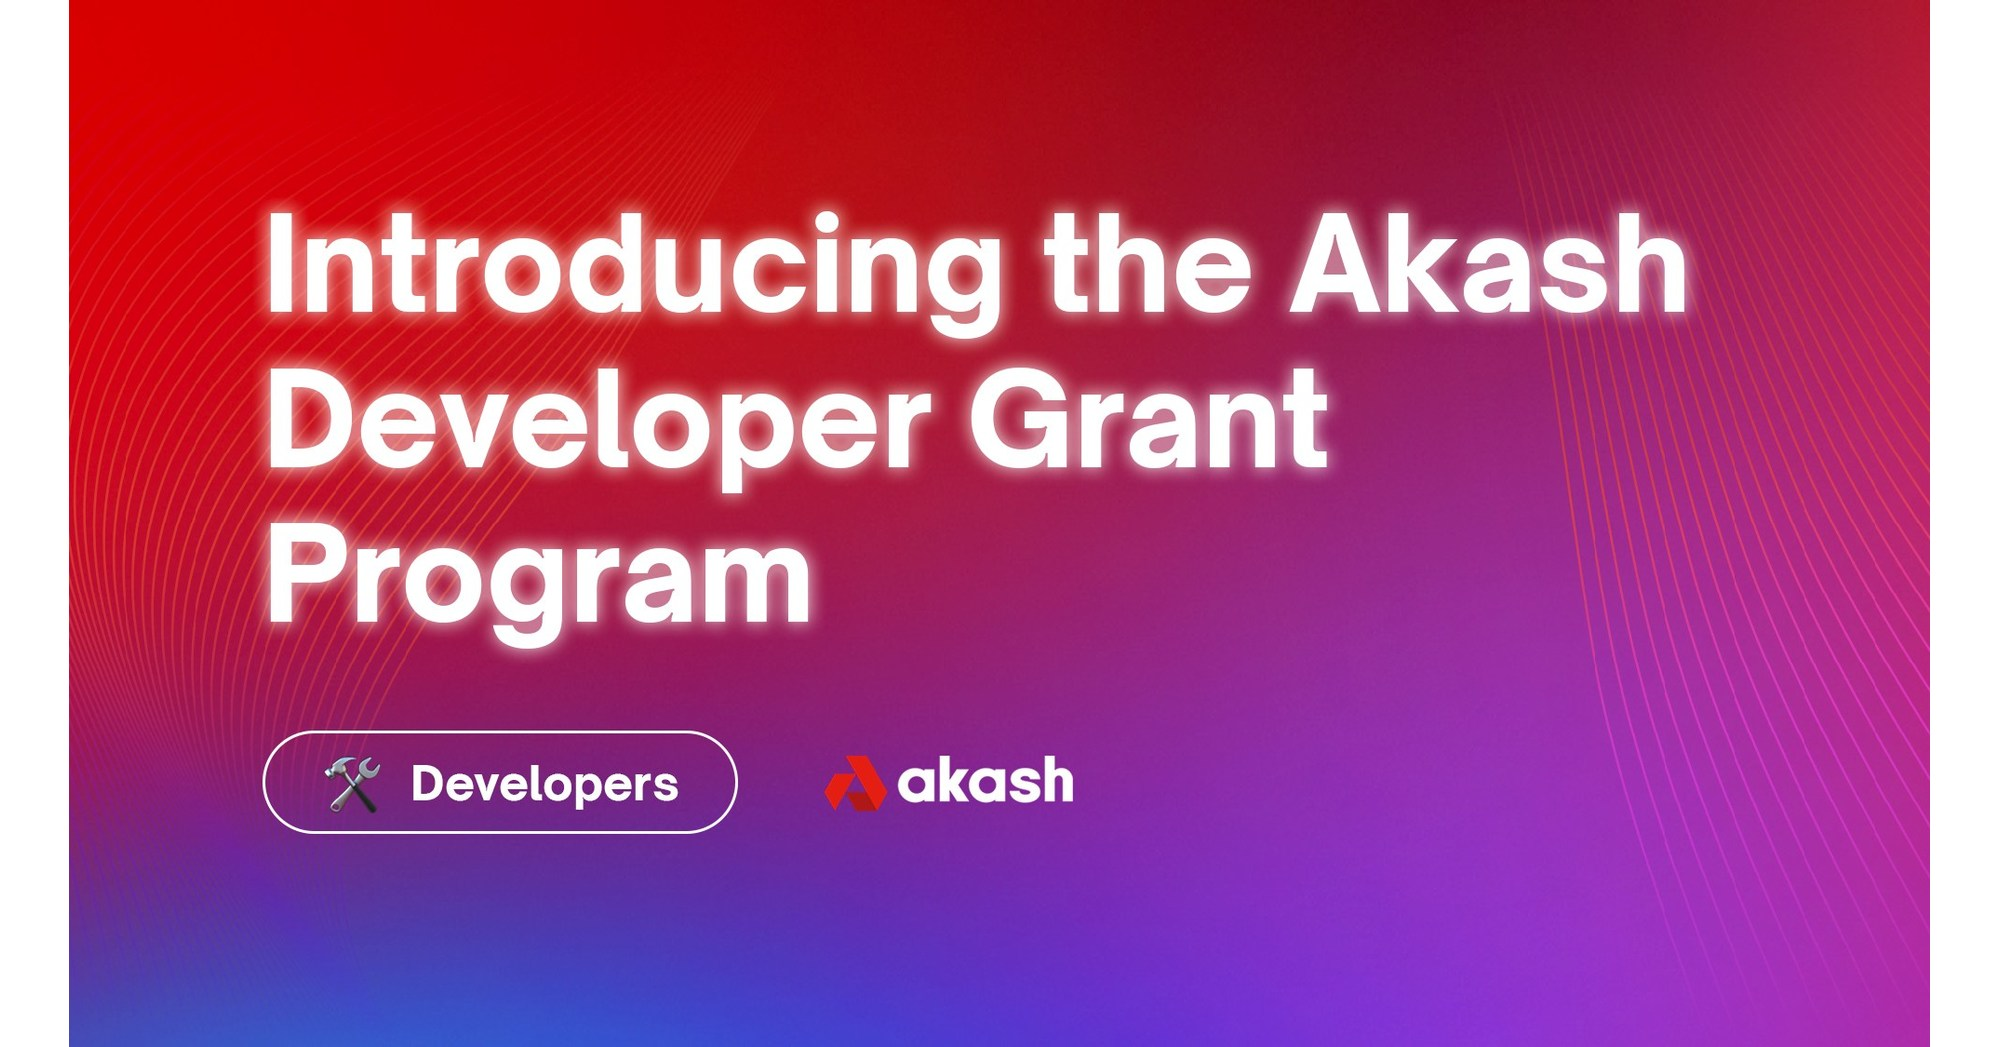 Akash Launches Developer Grant Program to Support Open-Source Projects and Decentralized Web Development